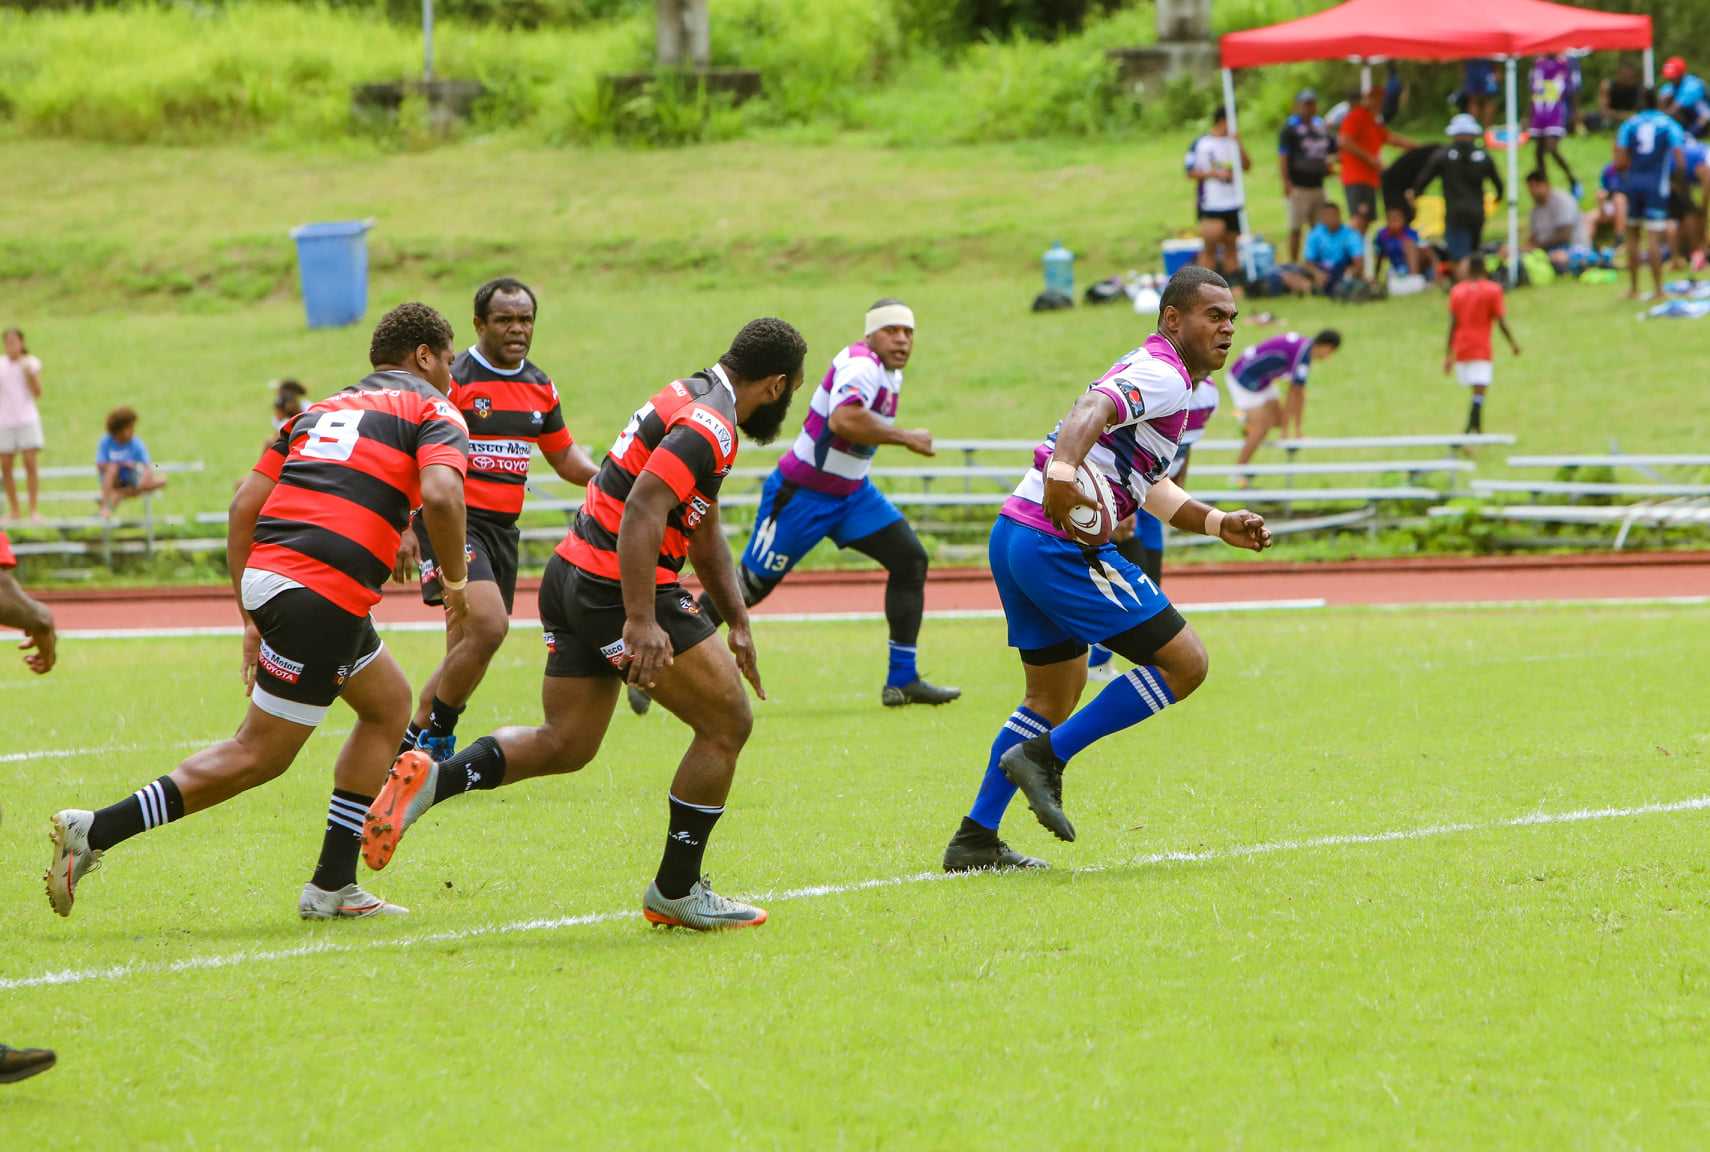 Police Forces hold pole position heading into Day Two of the Port Vila Nines